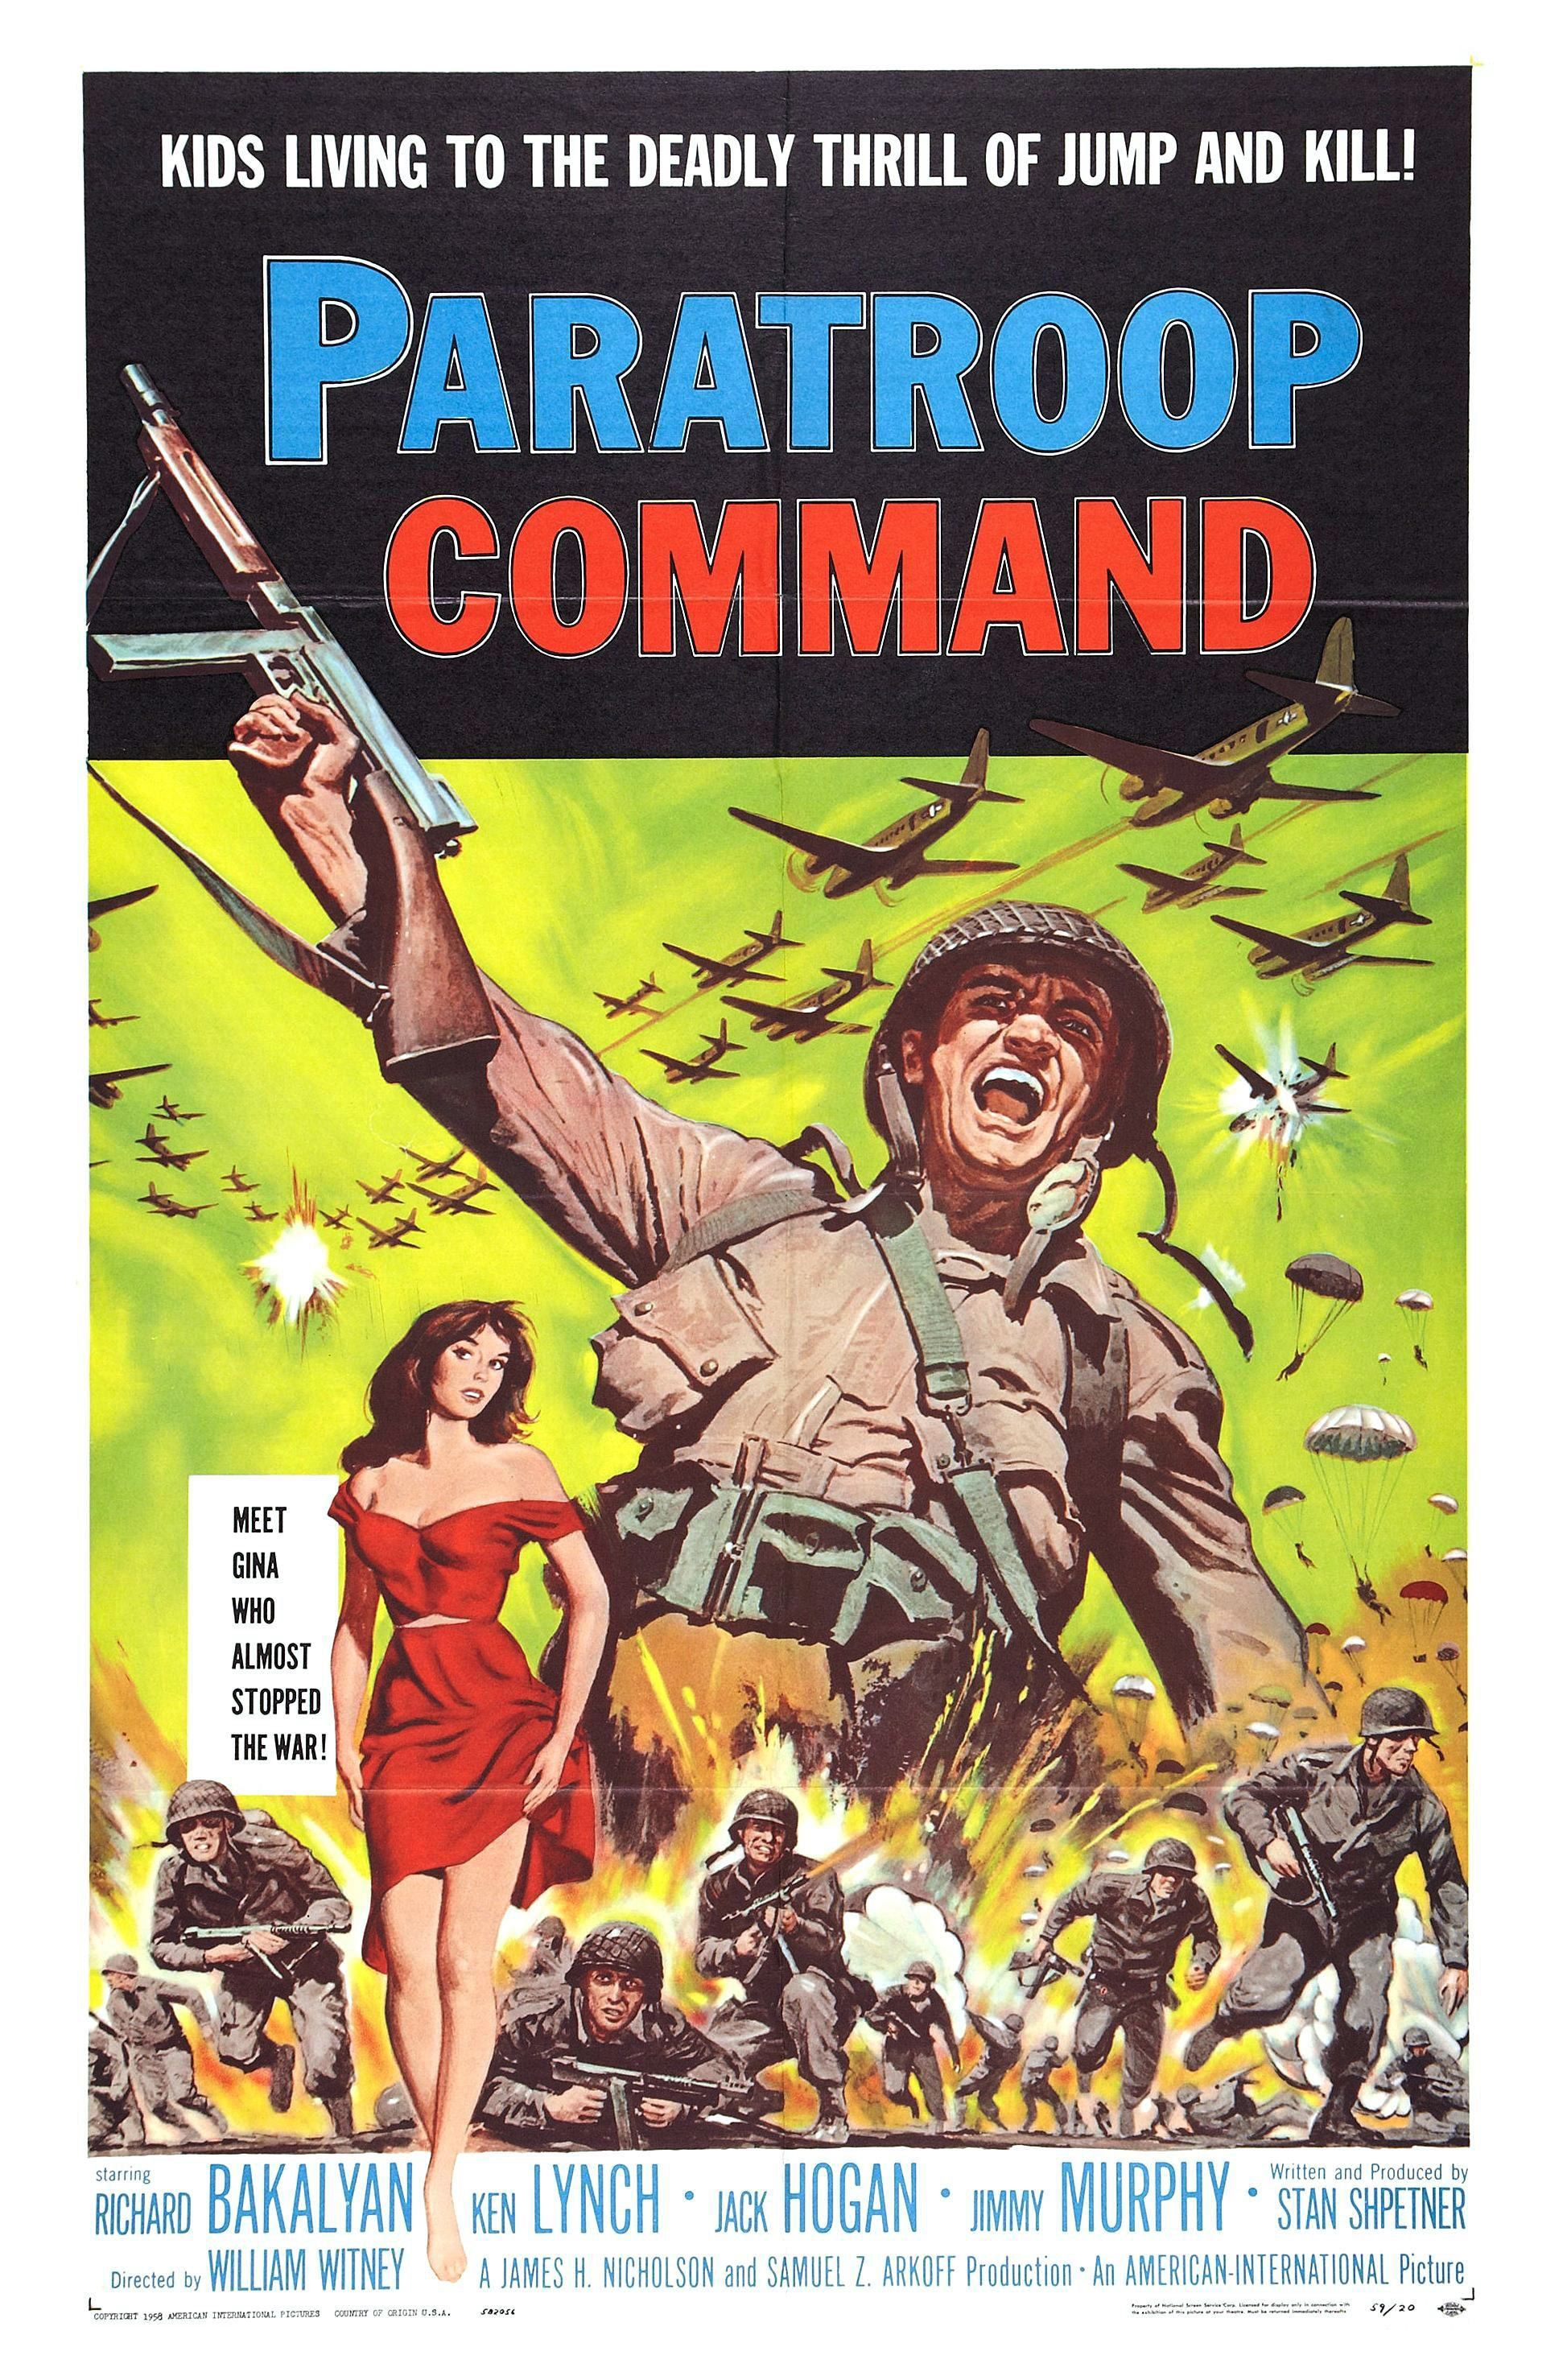 War Movie Posters 1950s January 31st 2012 Tags Aip William